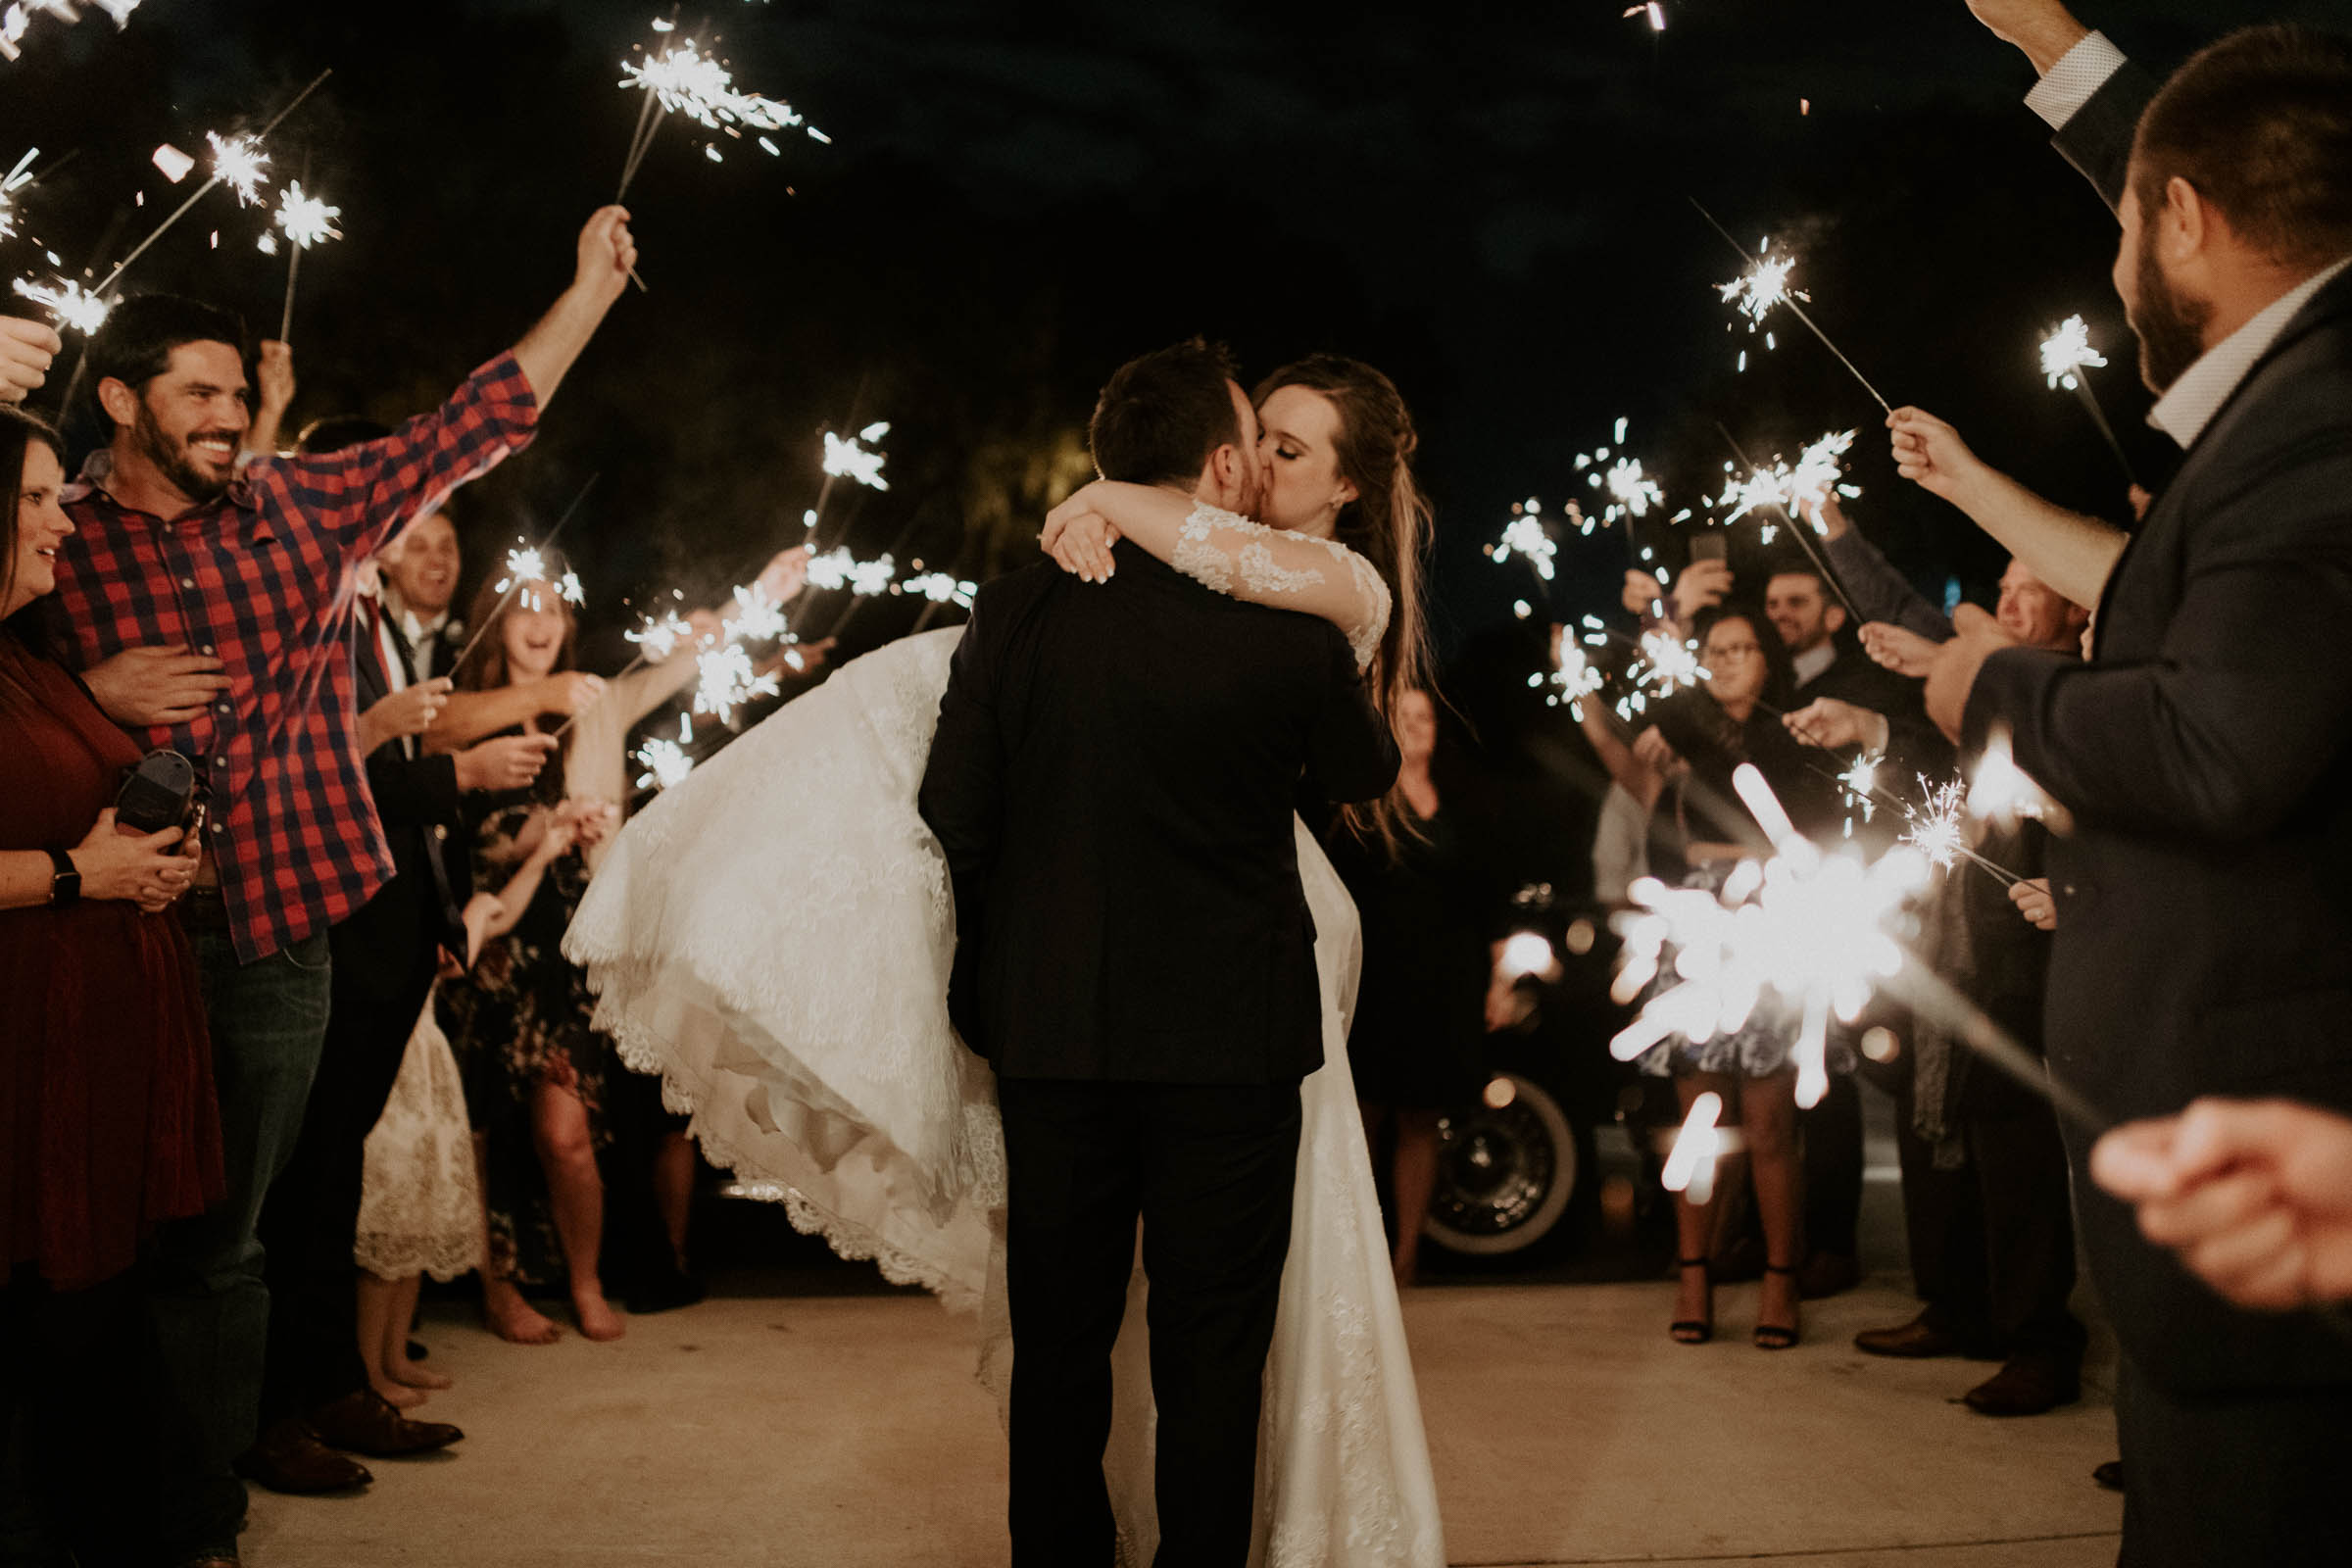 Groom carrying bride to the car on her wedding day in DFW through sparkler exit